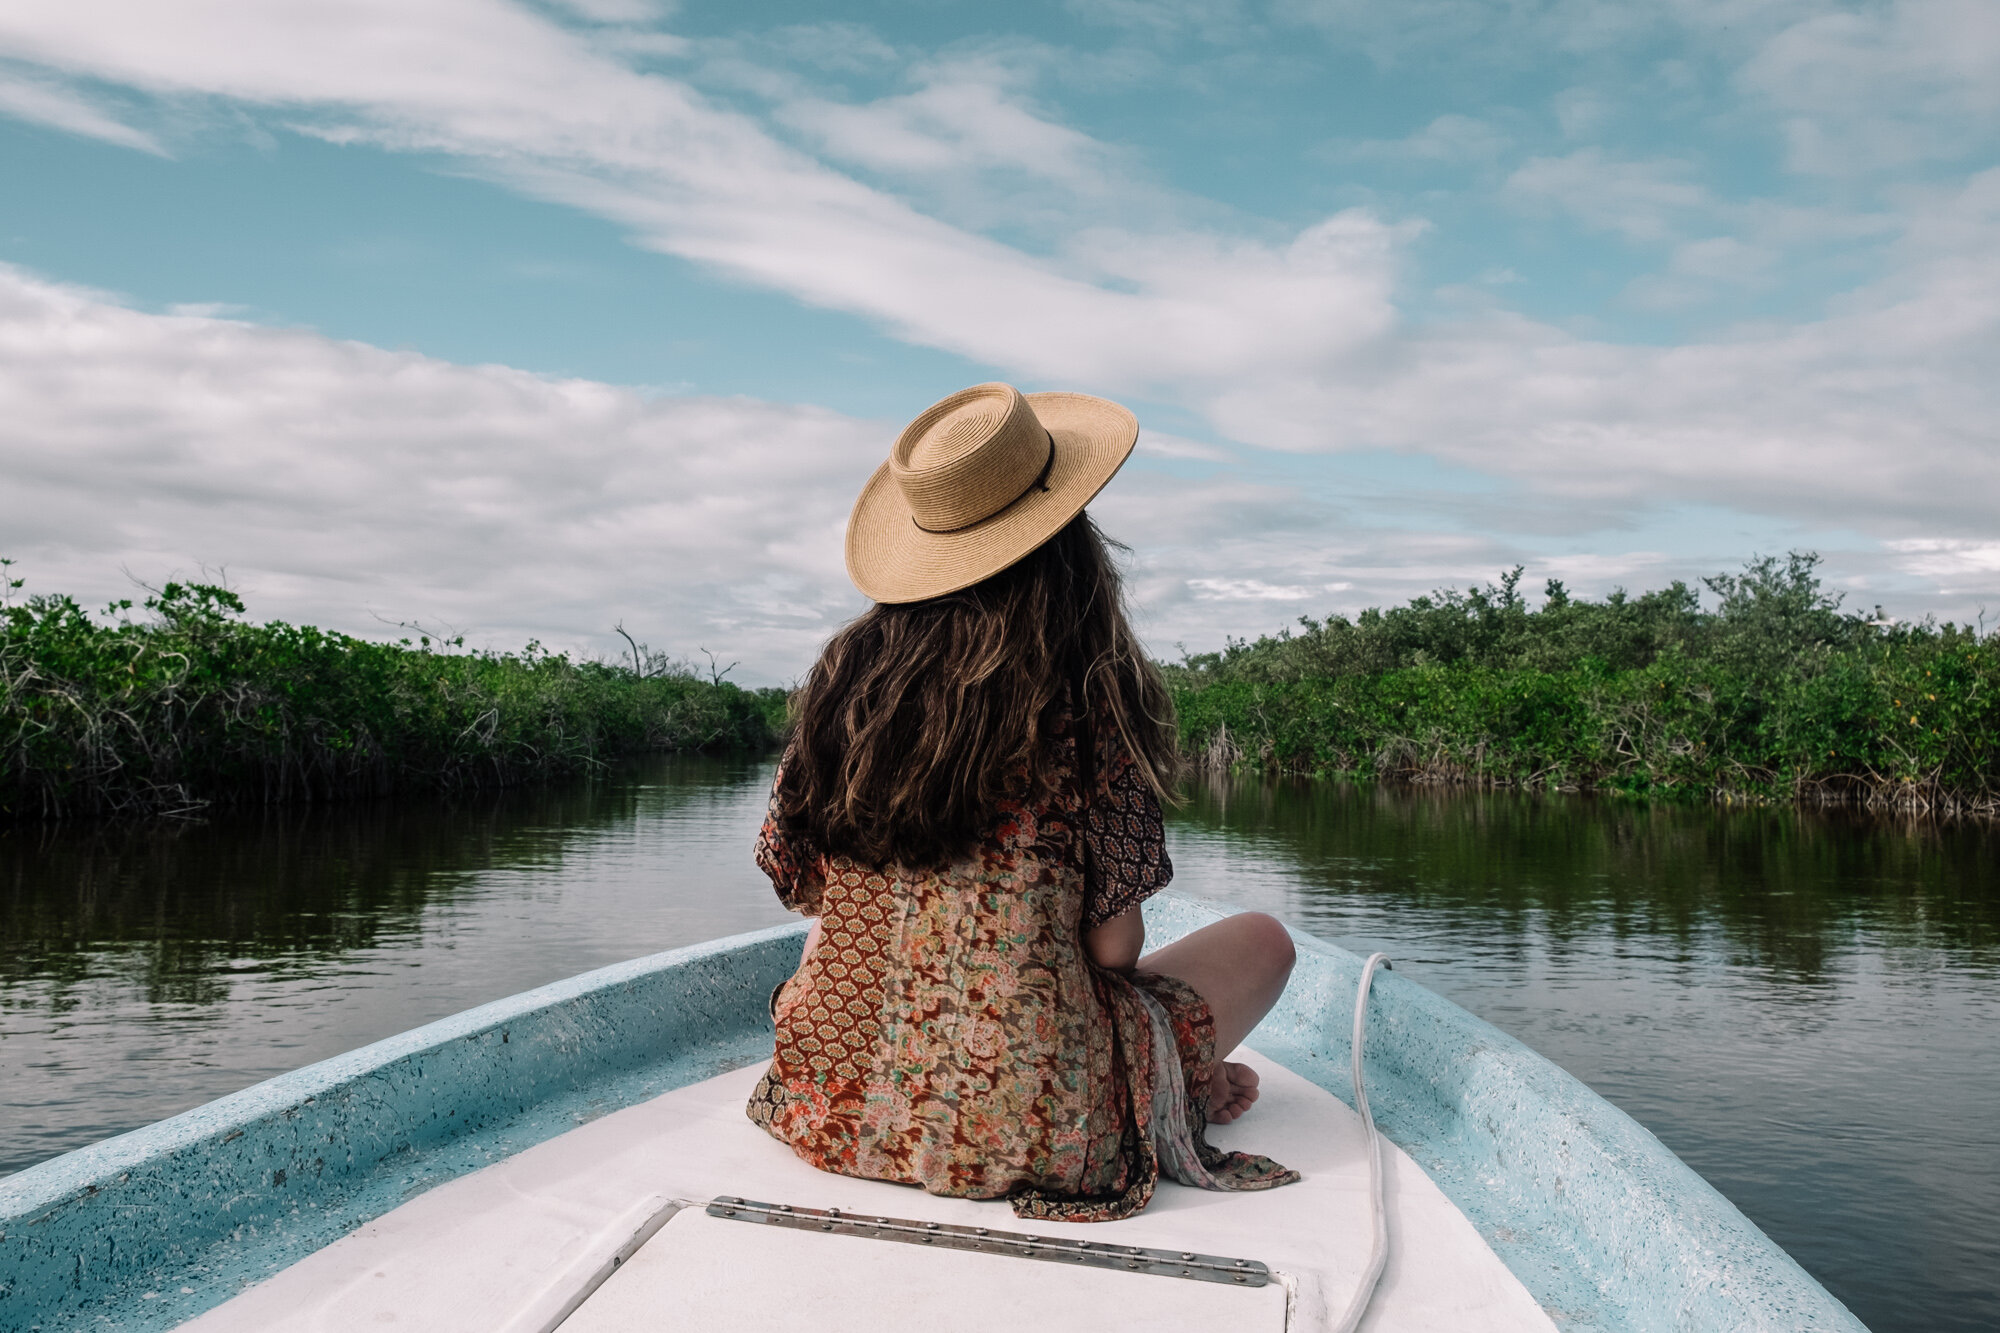 Rachel Off Duty: Woman On a Boat Visiting the Mangroves in Sian Kaan, Tulum, Mexico